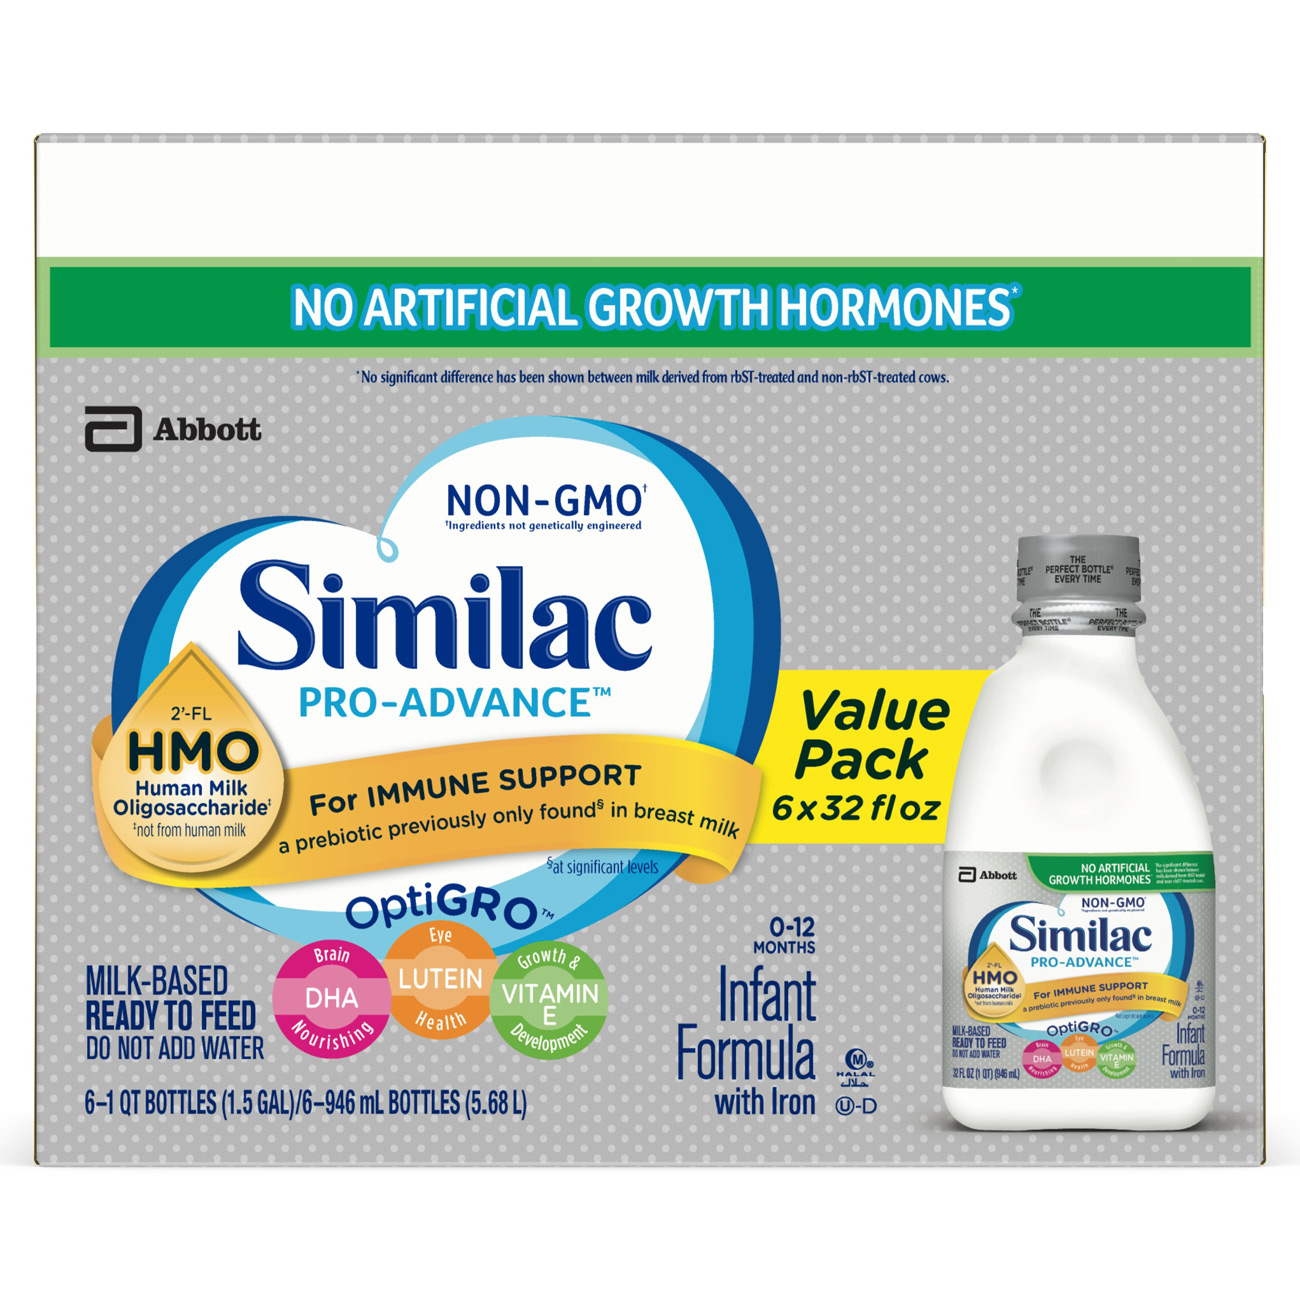 Similac Pro-Advance Infant Formula (6 Bottles) w/ 2'-FL Human Milk Oligosaccharide (HMO) for Immune Support, Ready to Feed, 1 qt